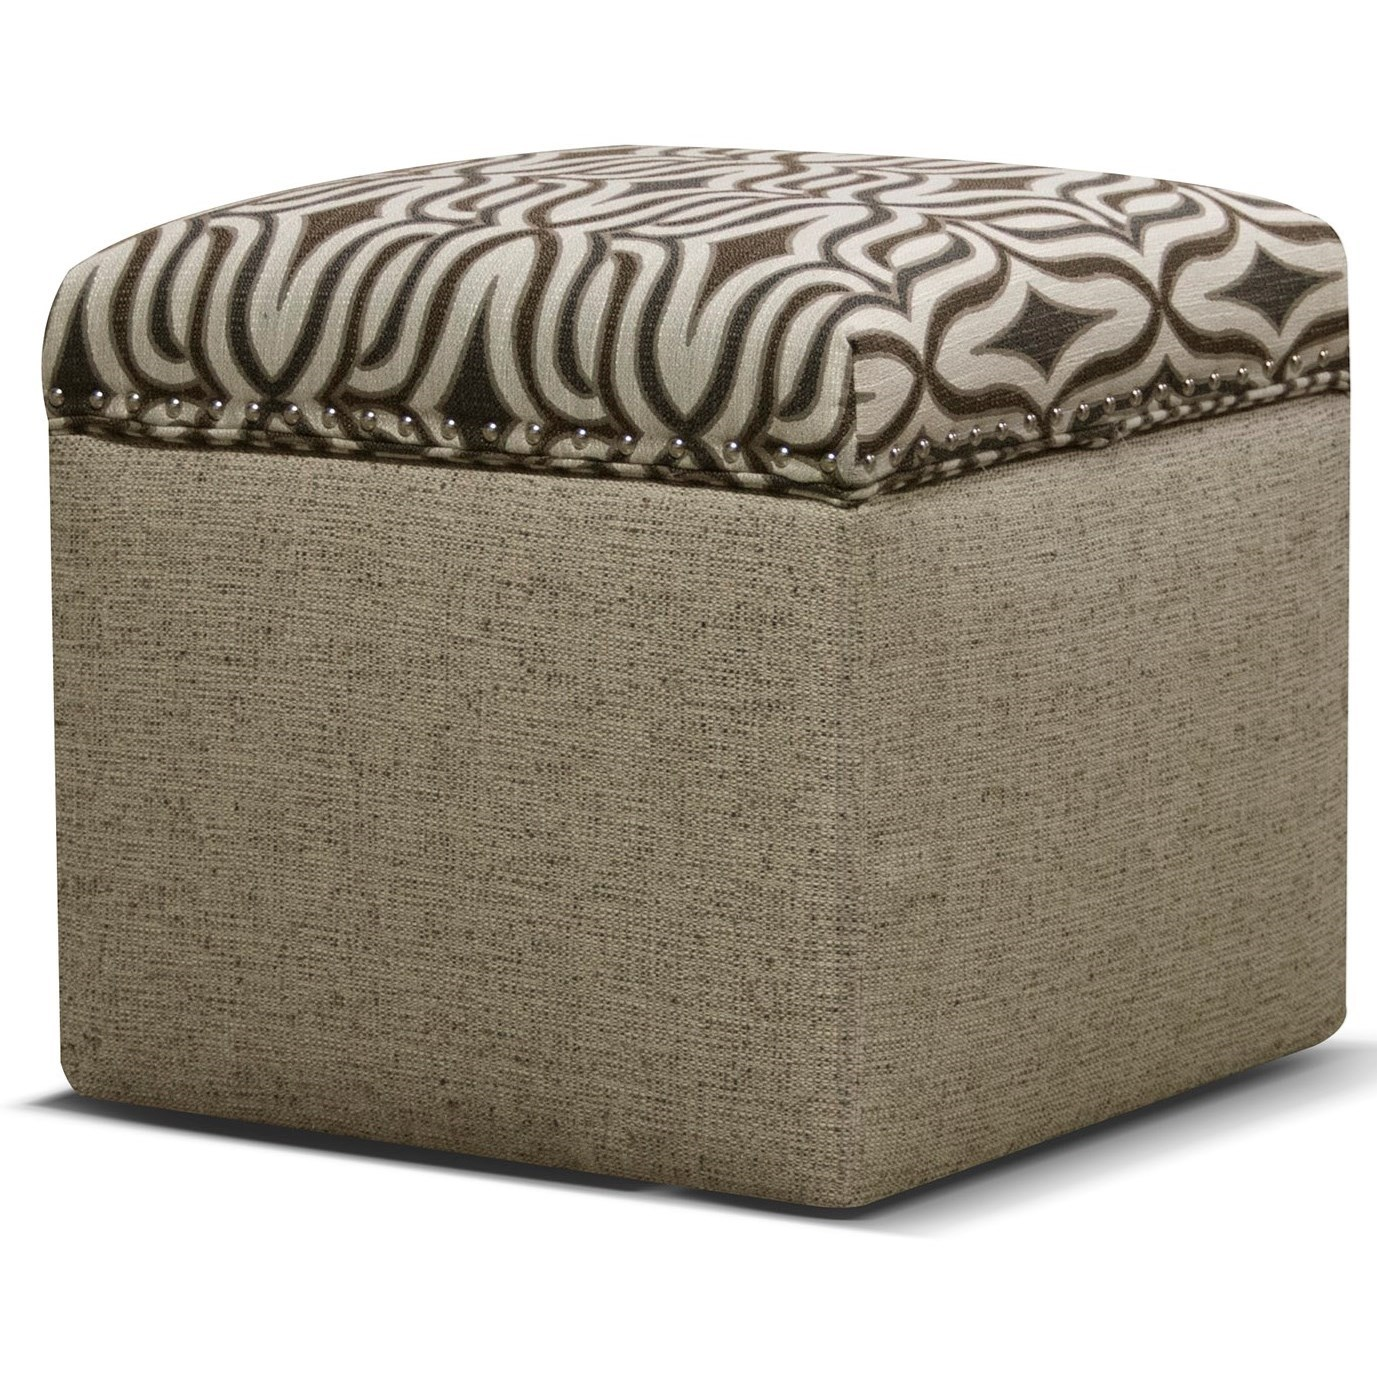 Parson Storage Ottoman with Nailhead Trim by England at Miller Home